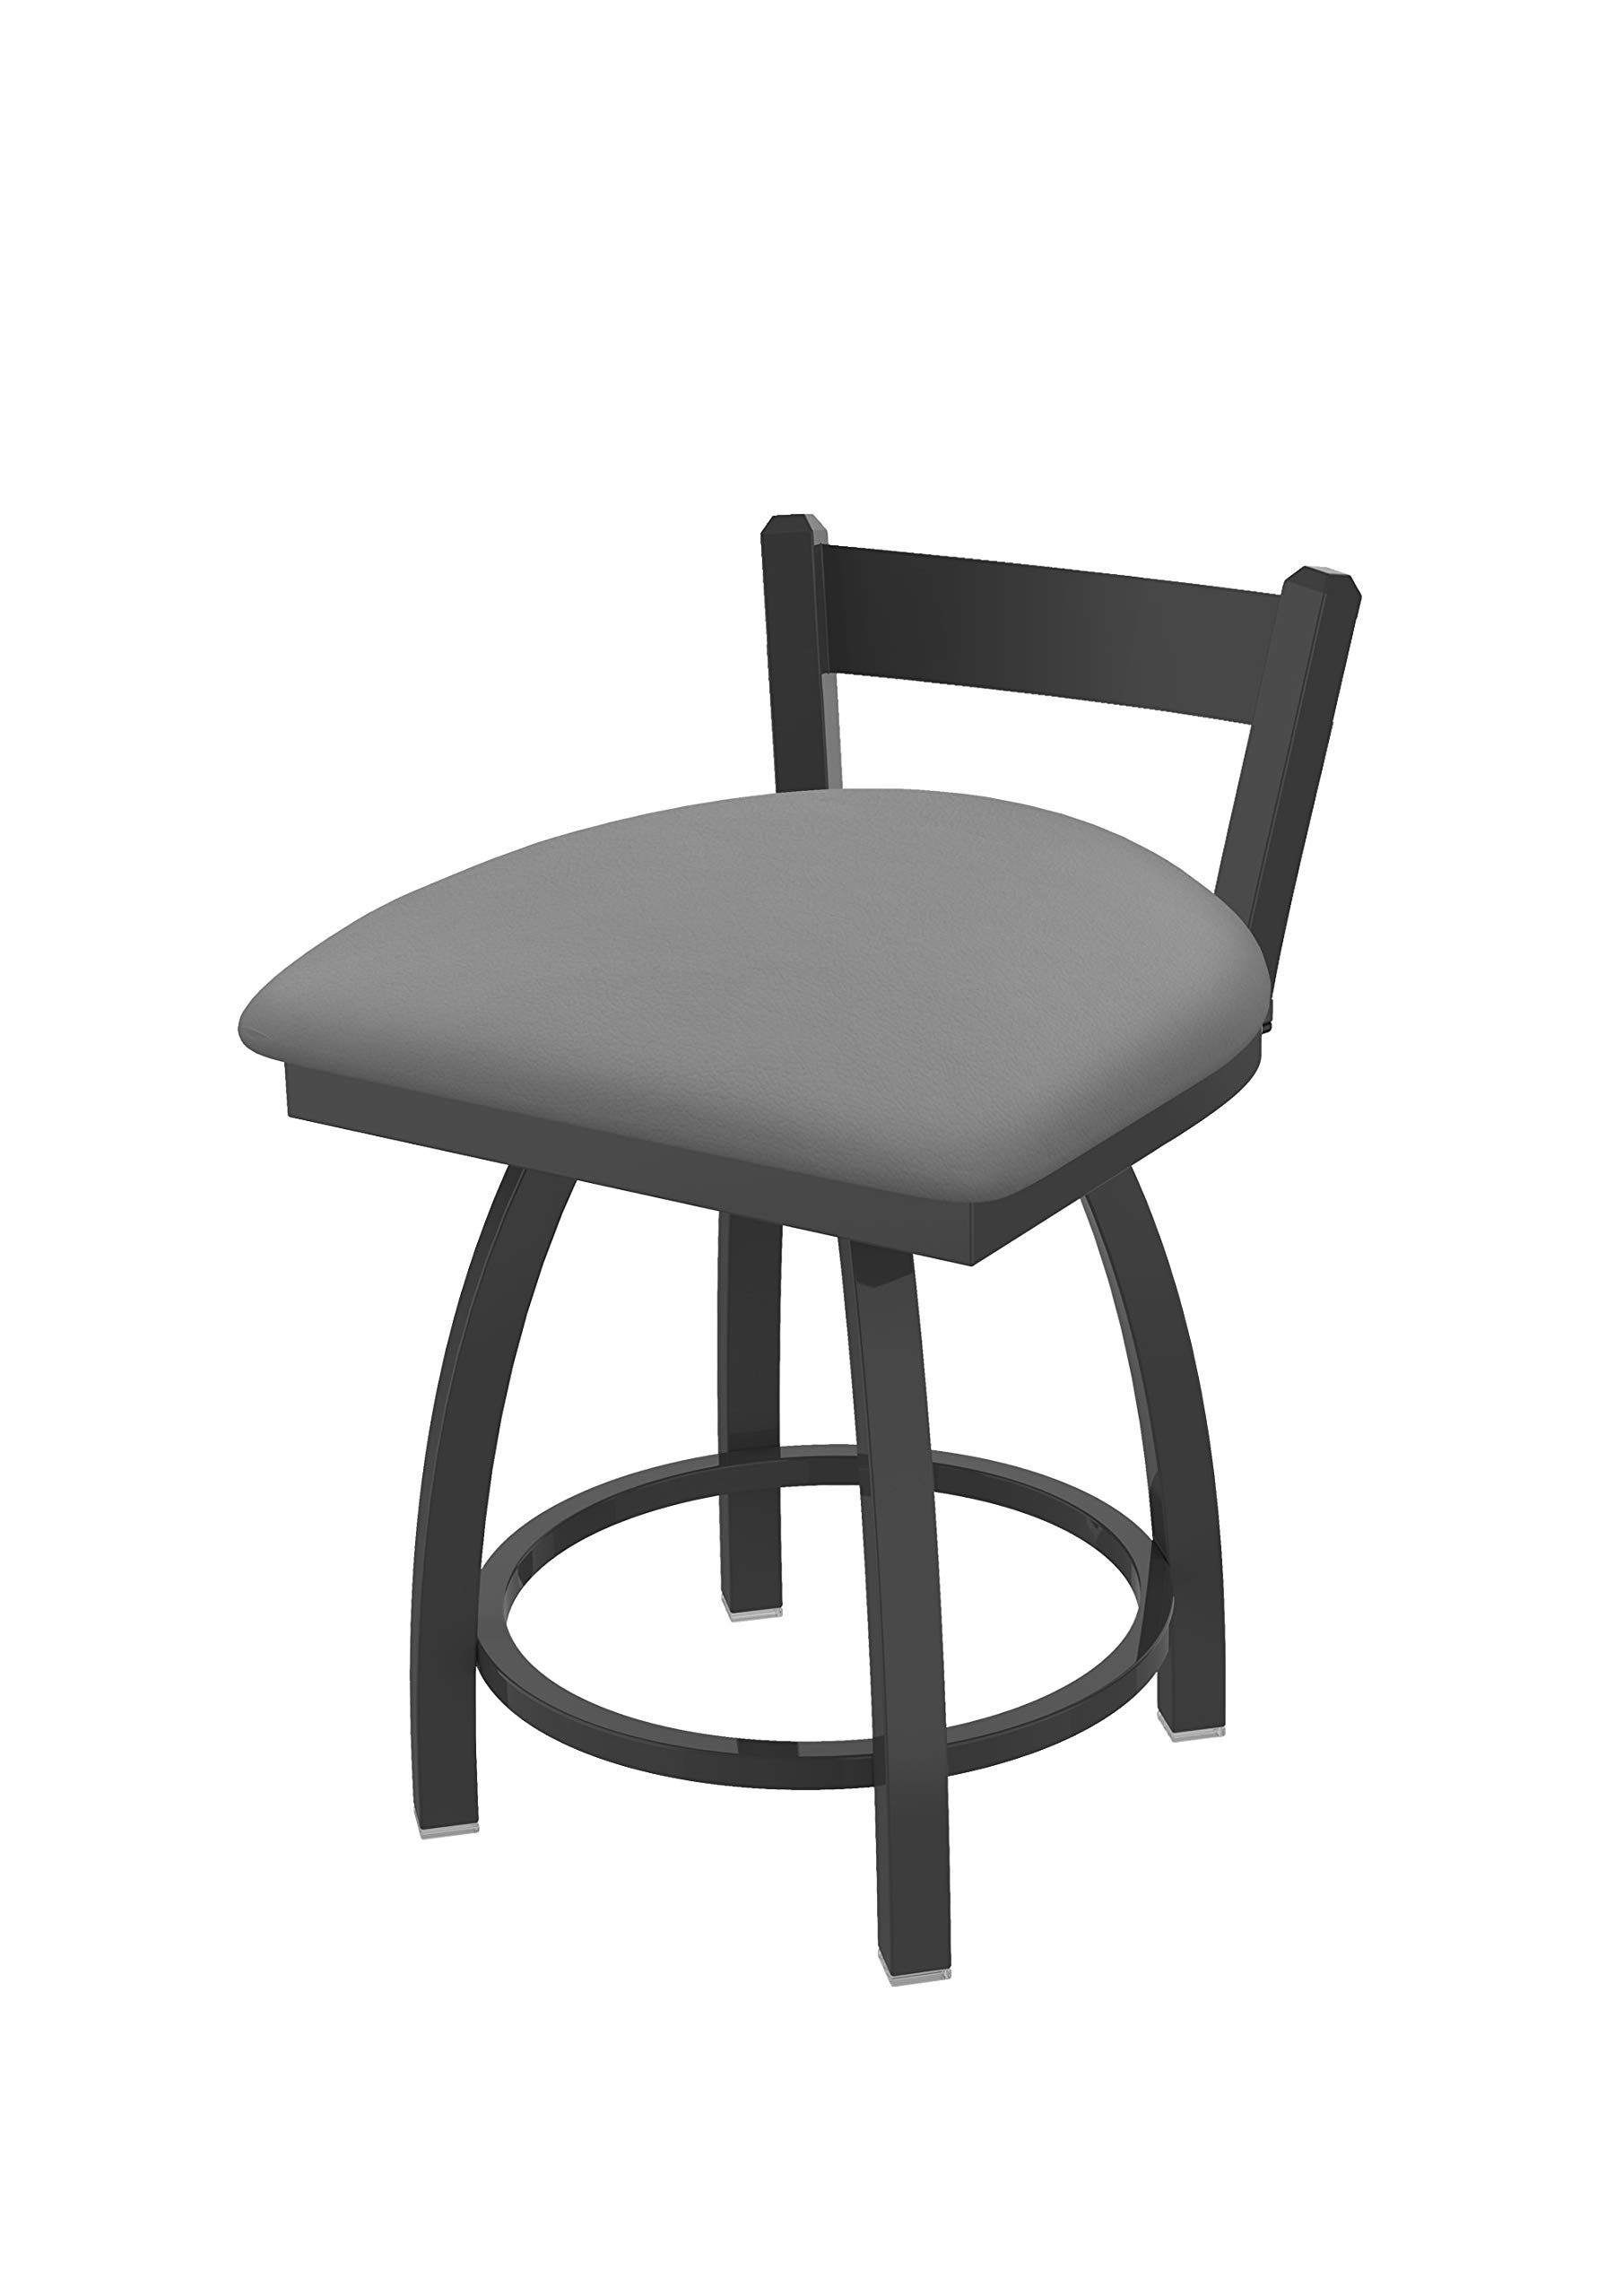 Holland Bar Stool Co. 82118PW007 821 Catalina 18'' Low Back Swivel Vanity Pewter Finish and Canter Folkstone Grey Seat Bar Stool